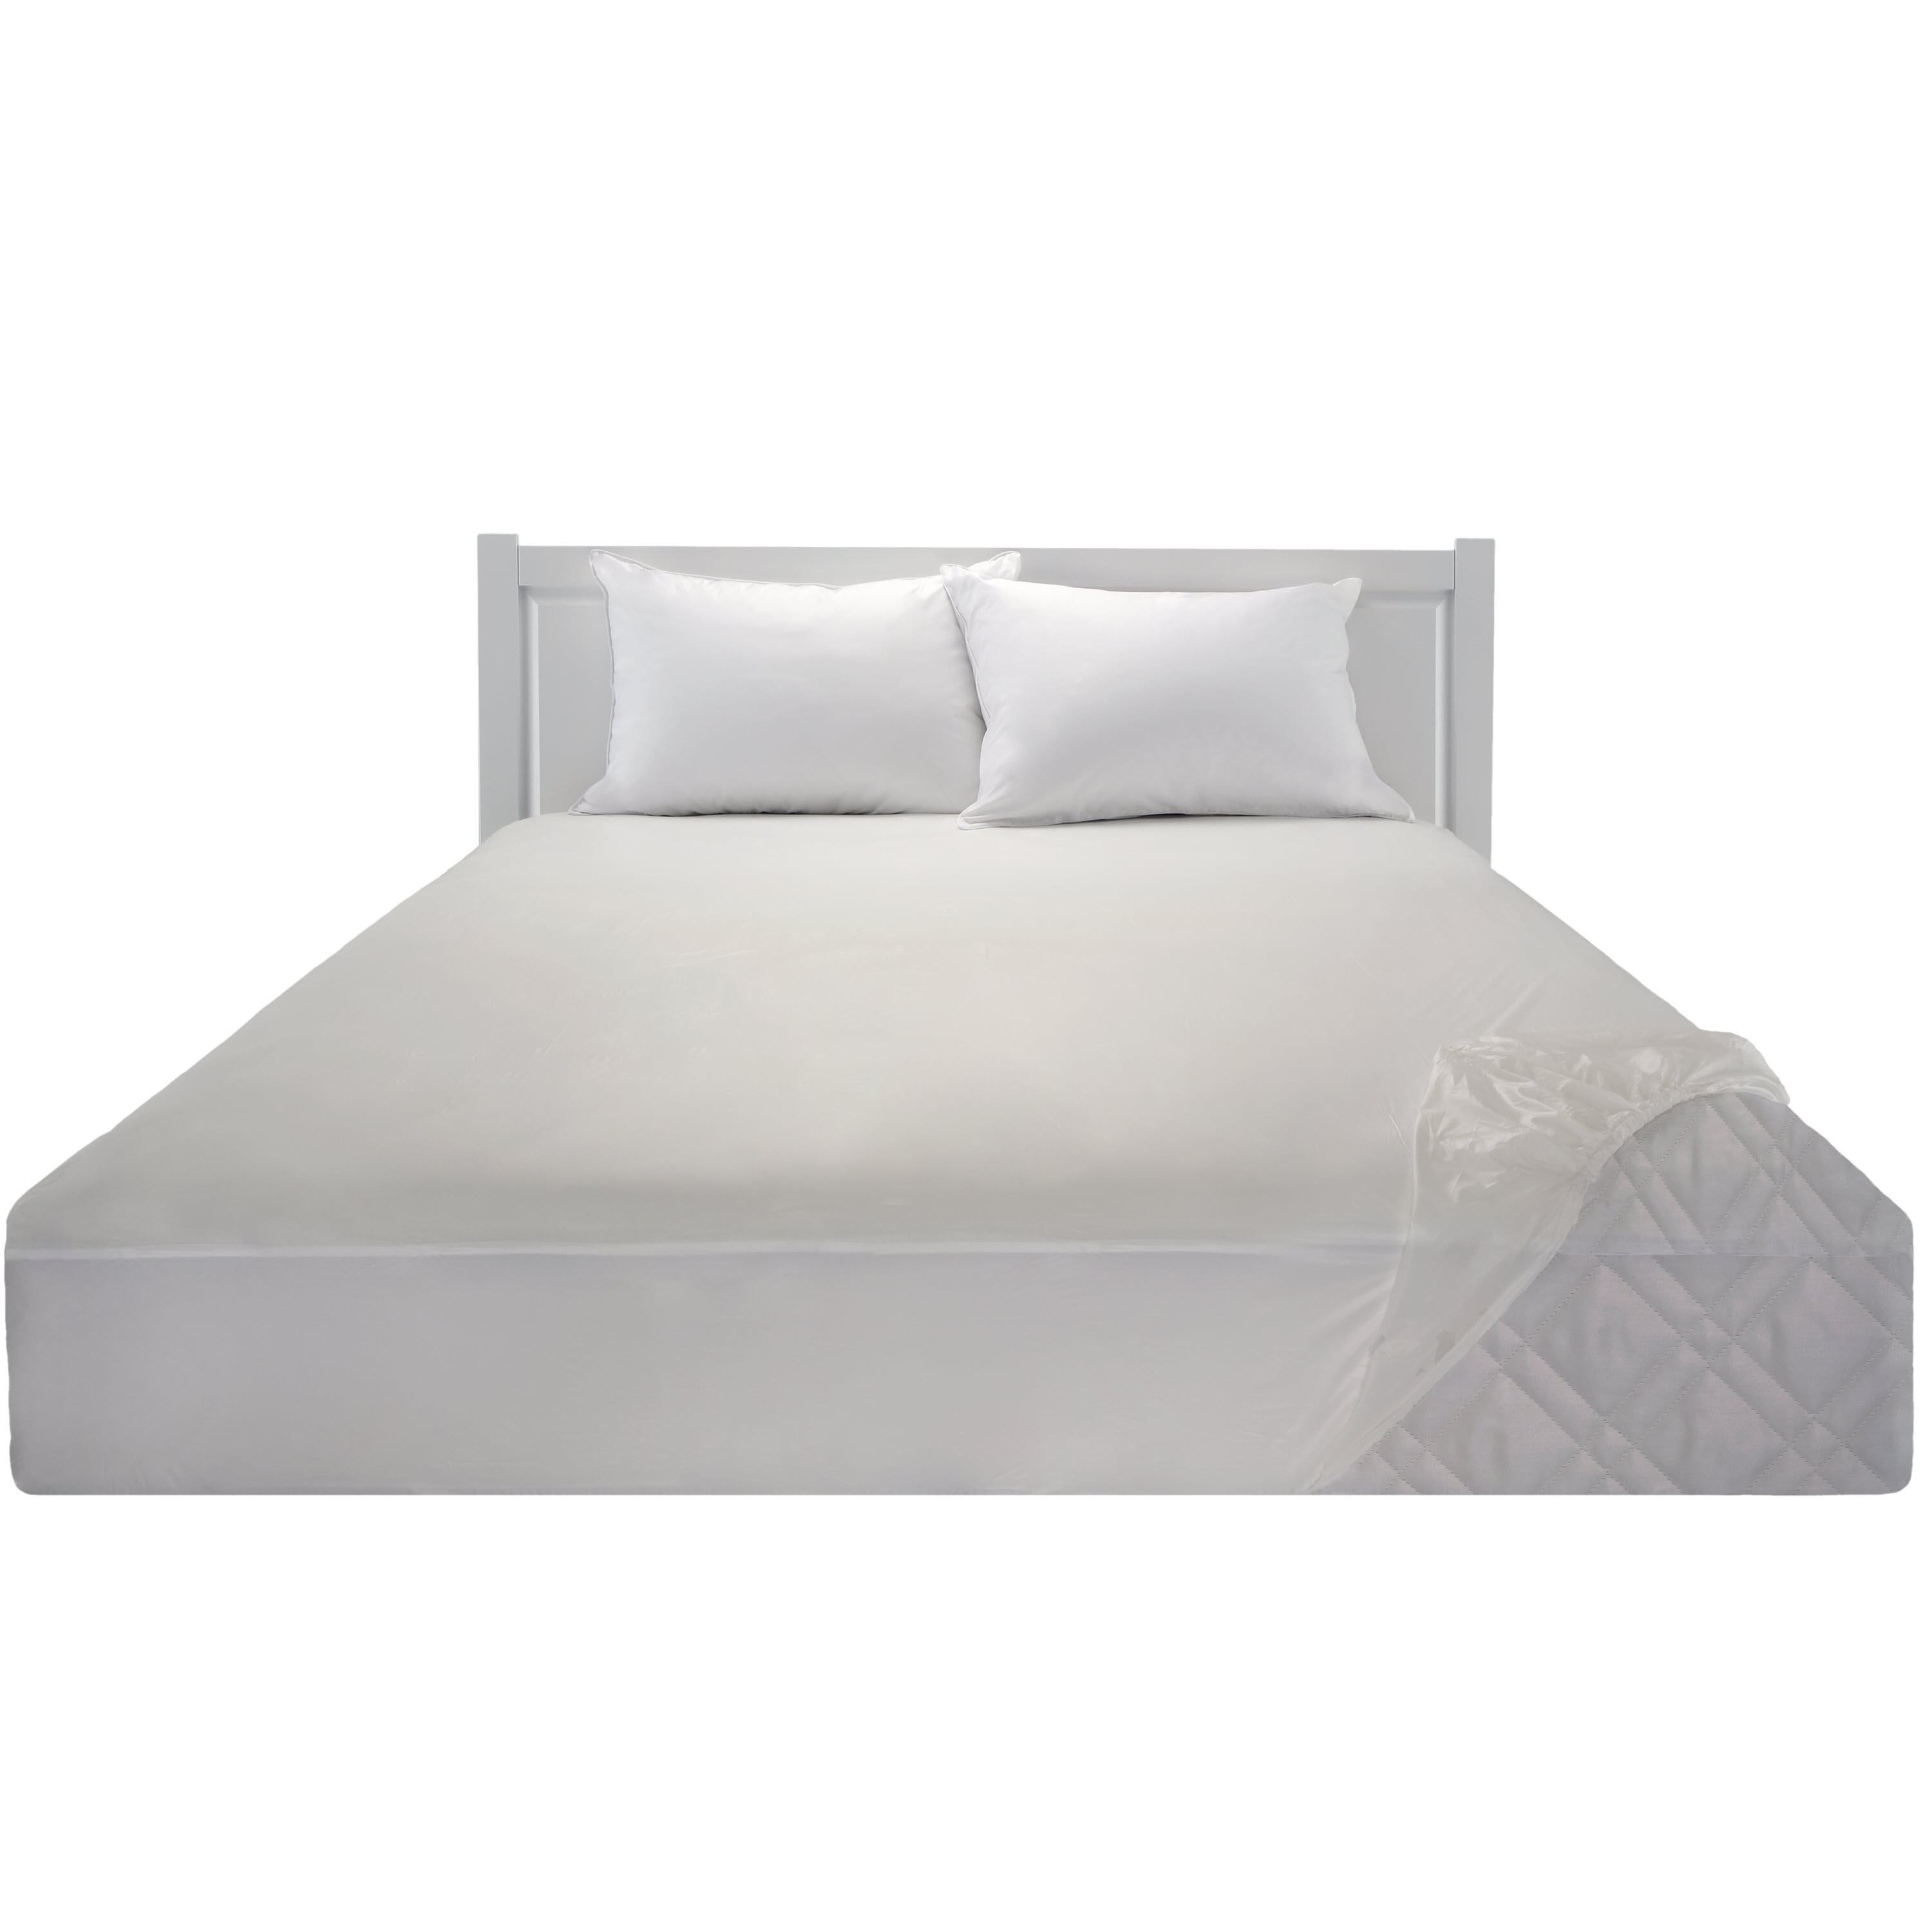 Mainstays Waterproof Fitted Vinyl Mattress Protector   Walmart.com